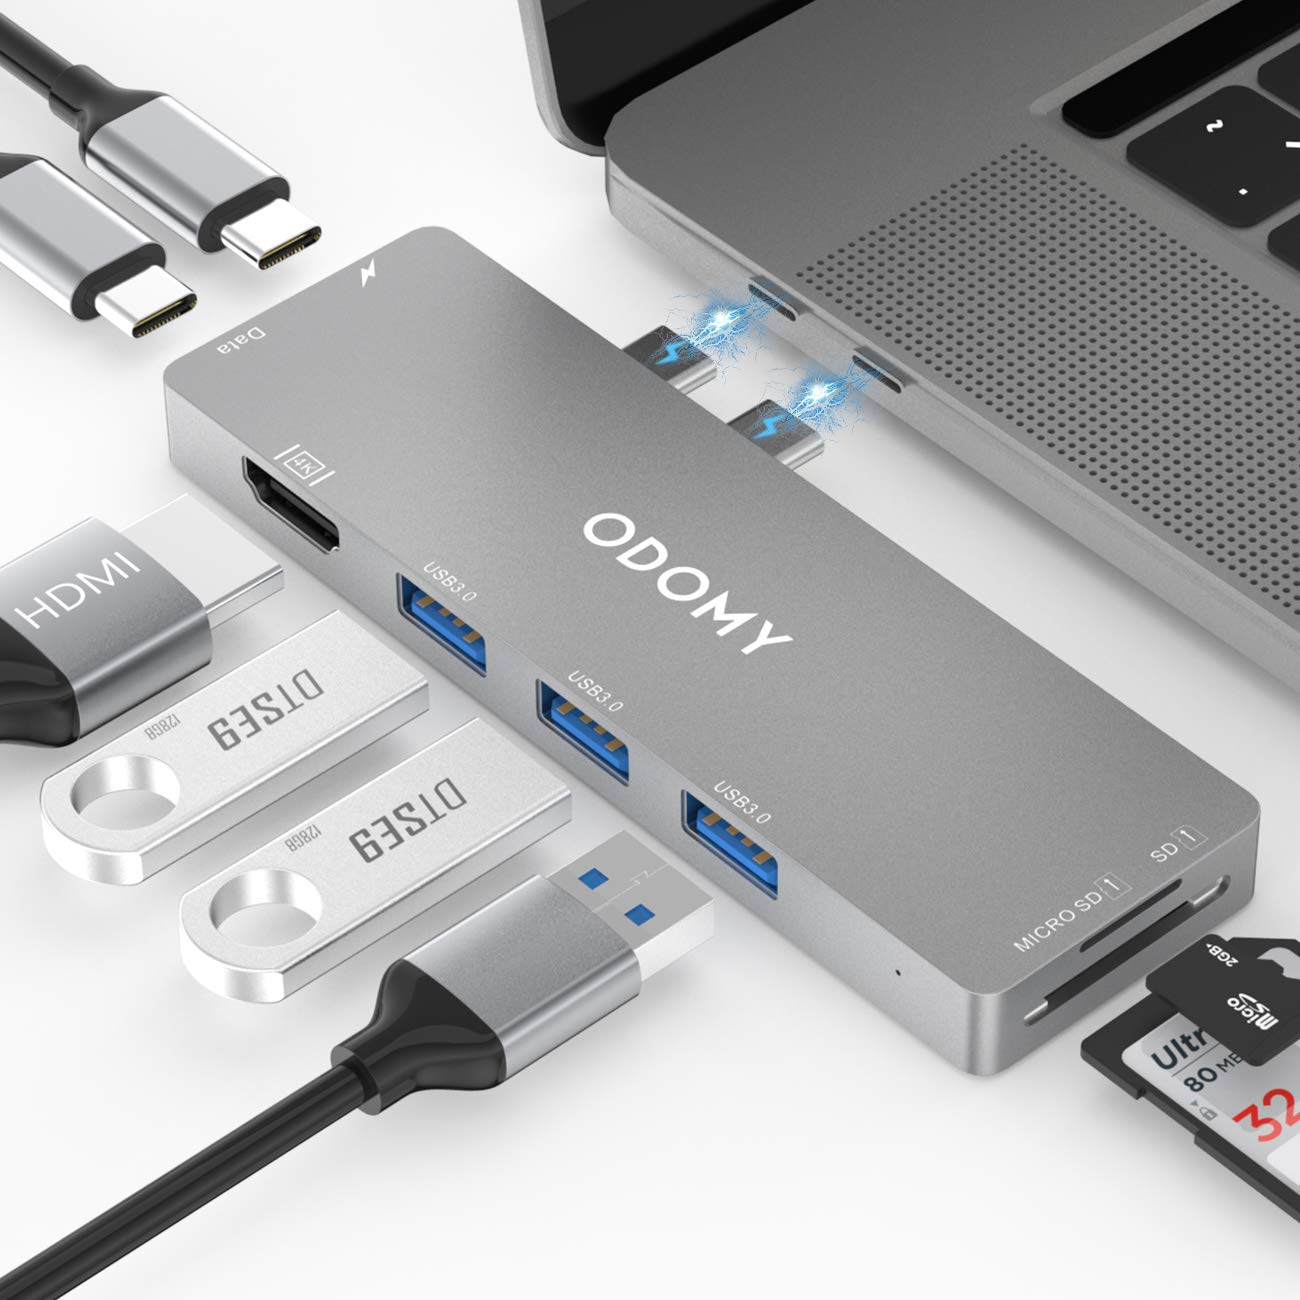 ODOMY USB C Hub 8 in 1 for MacBook Pro 2019 2018 2017 2016 13''15'' Dual Type C Hub Adapter with Thunderbolt 3, 100W Power Delivery, 4K HDMI, 3xUSB 3.0 Ports, SD&TF Card Reader